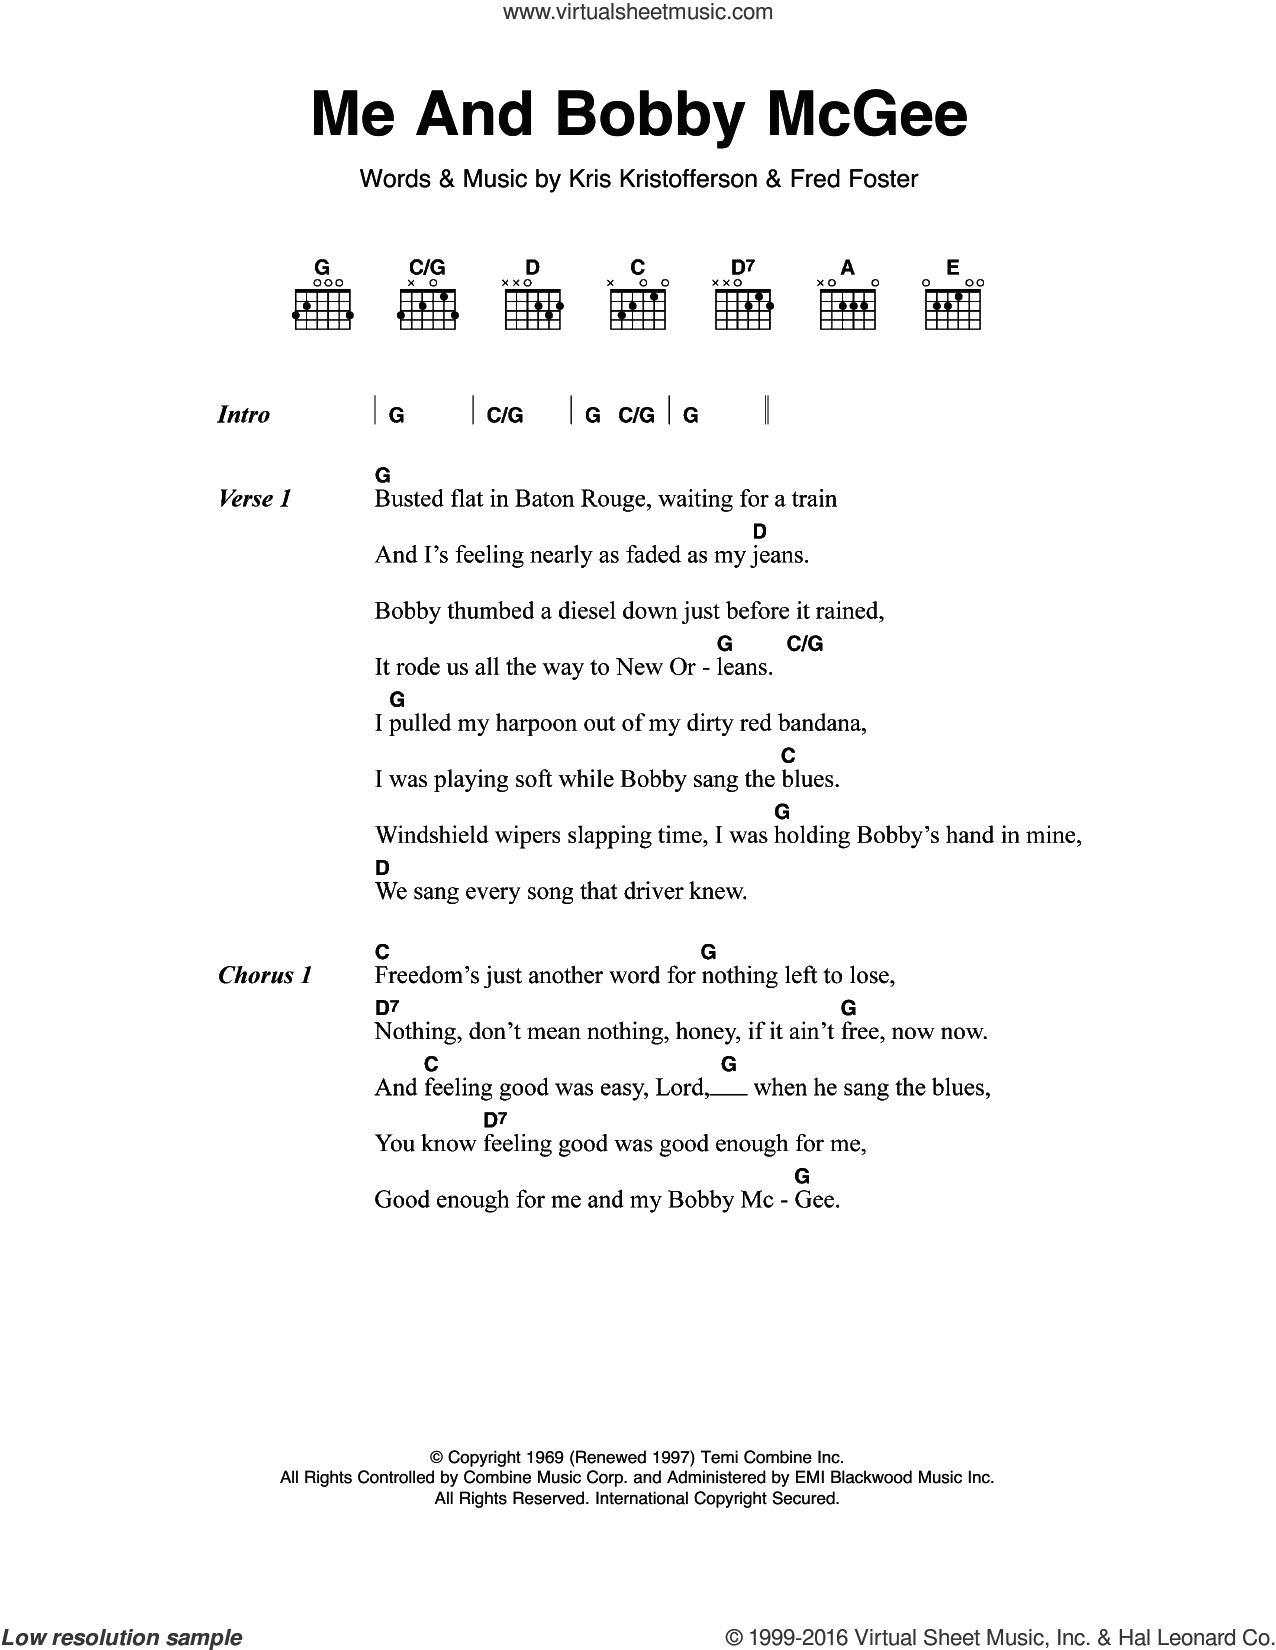 Me And Bobby McGee sheet music for guitar (chords) by Janis Joplin, Fred Foster and Kris Kristofferson, intermediate skill level